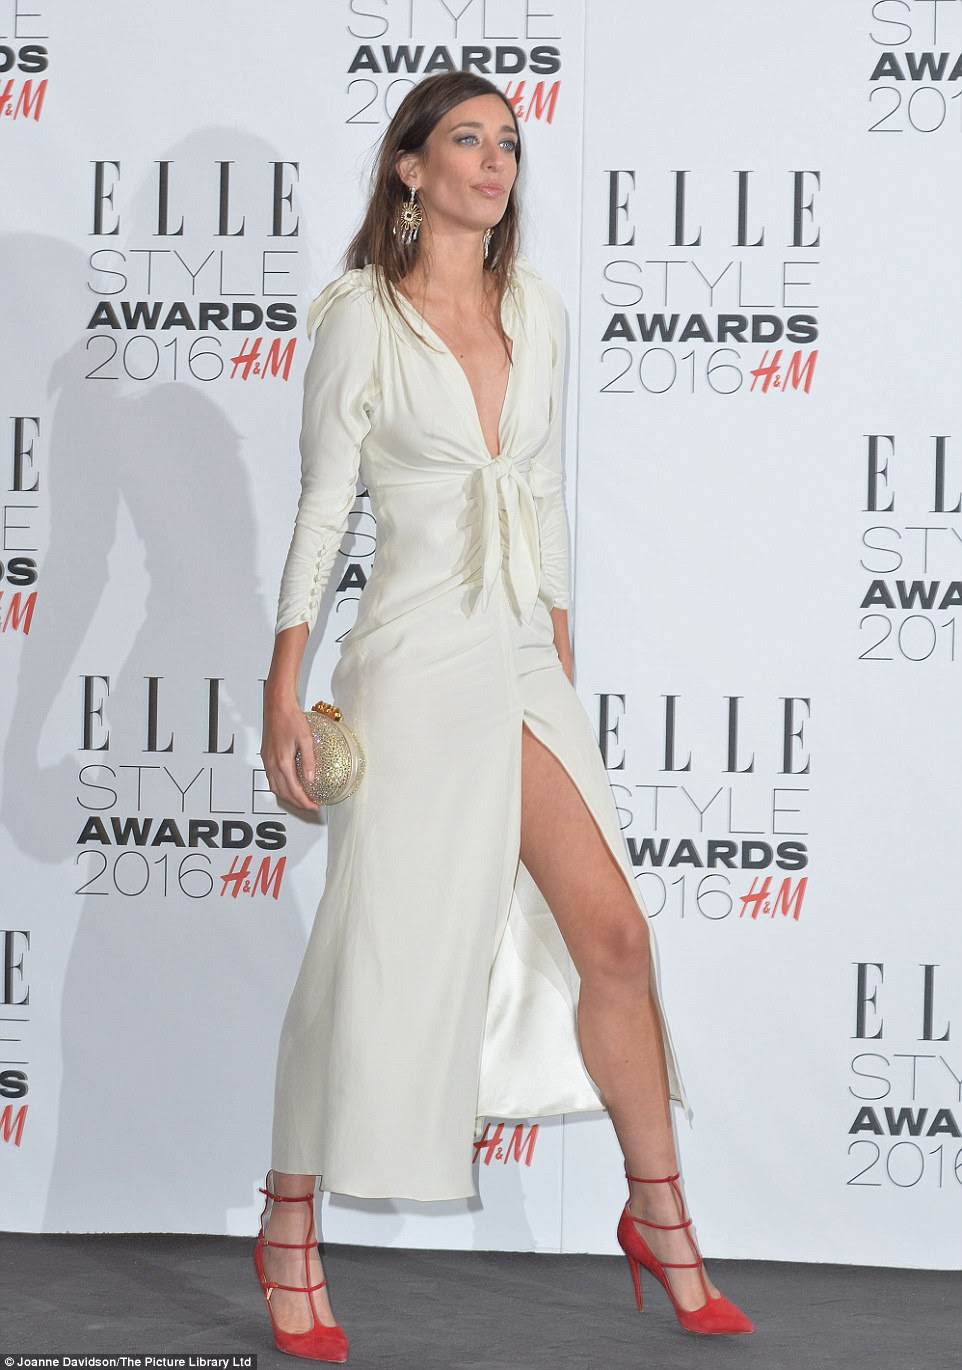 Leggy appearance: Take Me Out: The Gossip presenter Laura Jackson offset her white dress with red heels